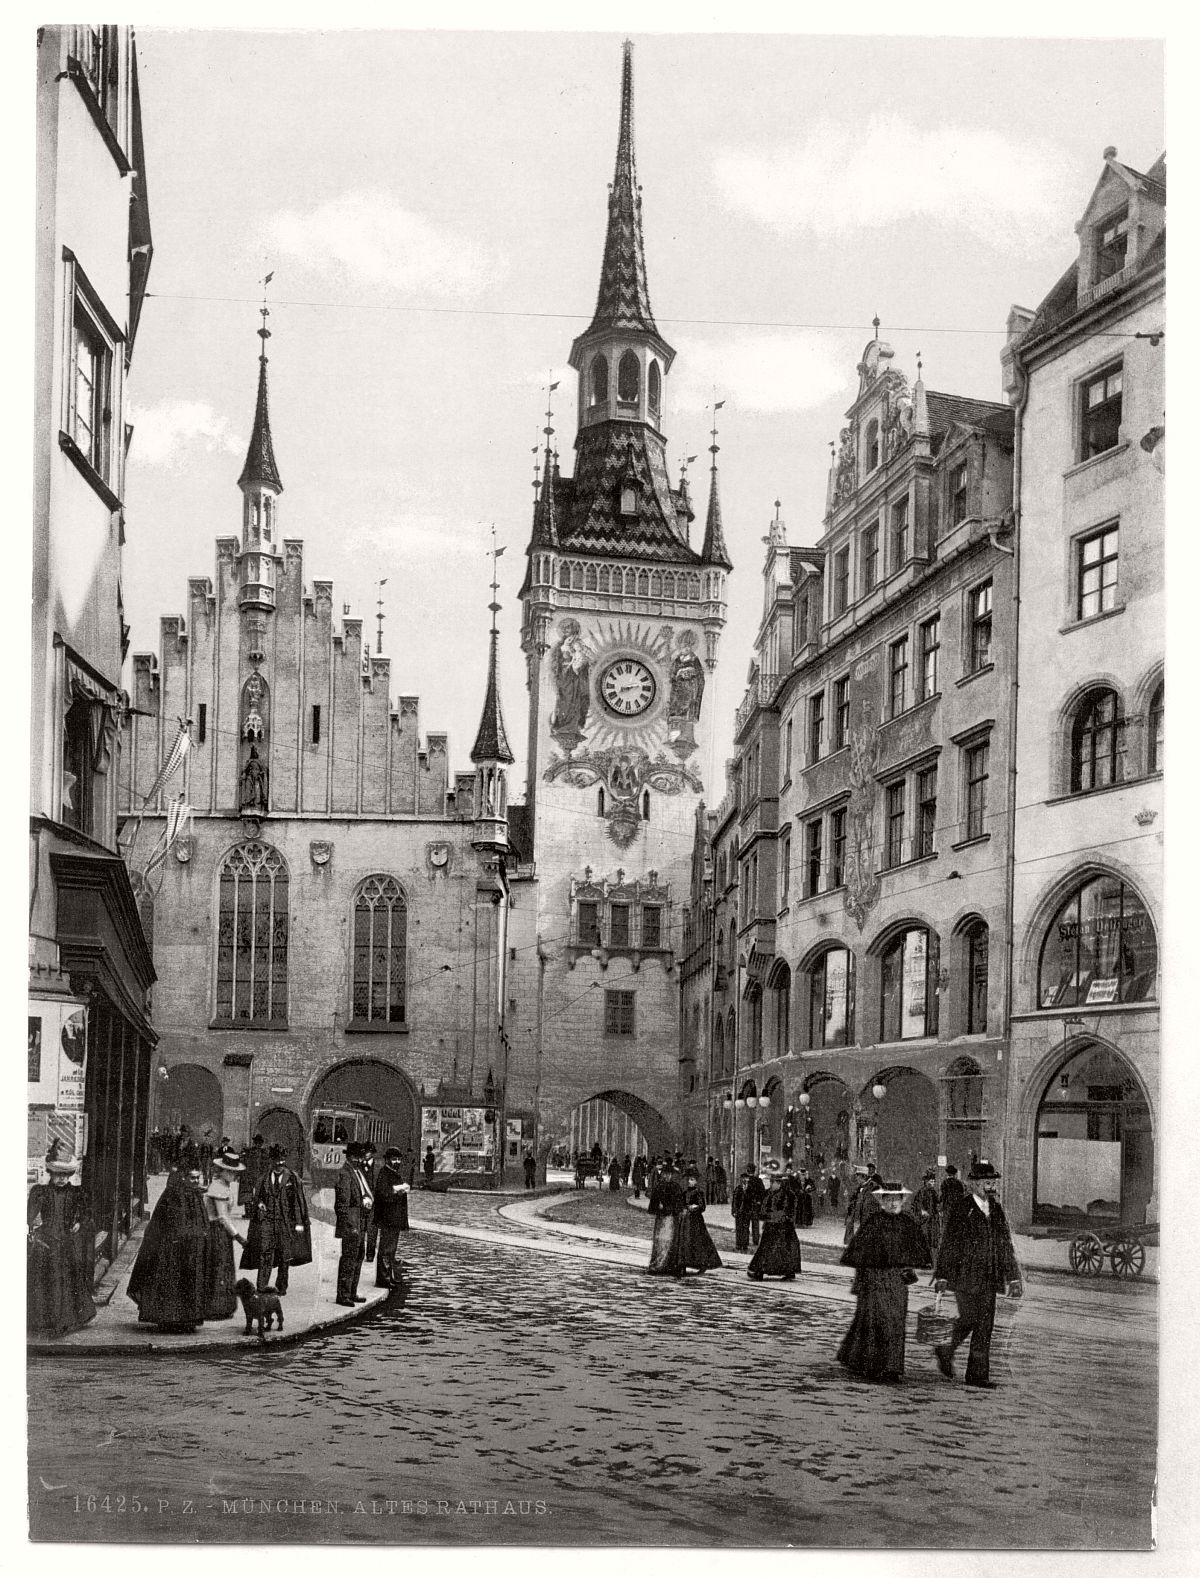 Historic BW photos of Munich Bavaria Germany in the